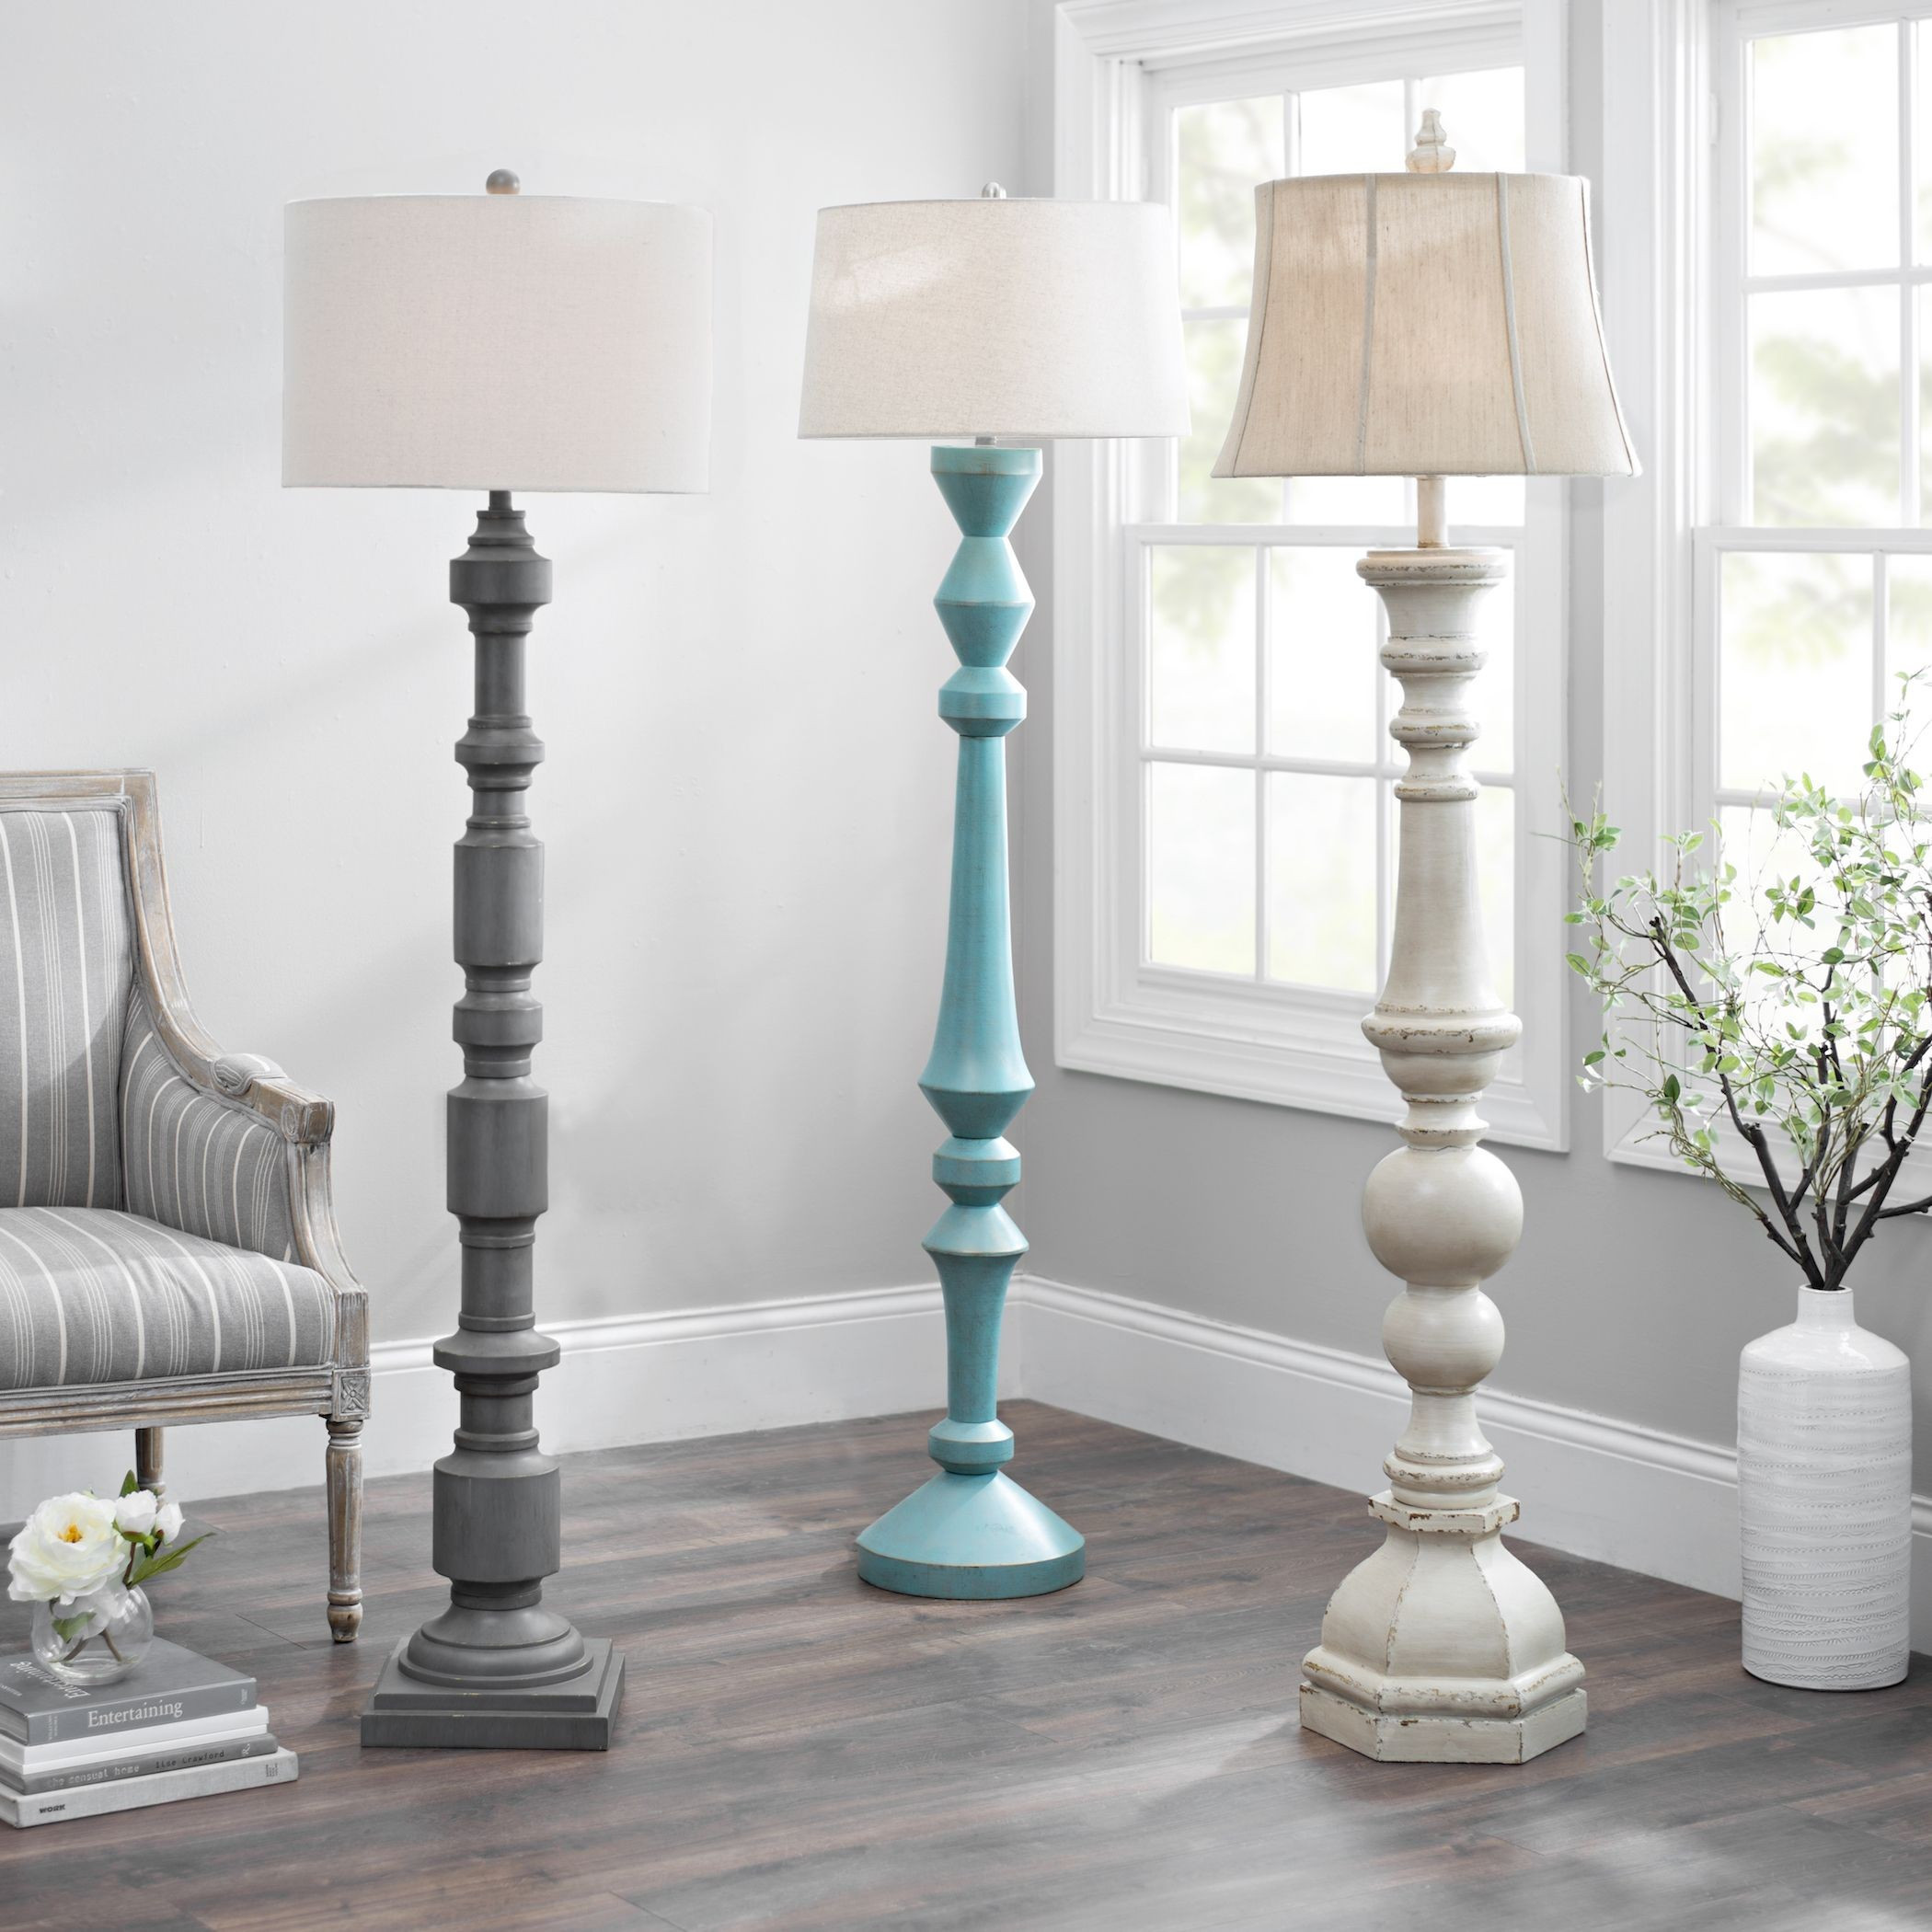 chinese vase lamp of 15 luxury bamboo floor lamp photograph dizpos com pertaining to bamboo floor lamp fresh here s a bright idea update your space with a fabulous floor lamp